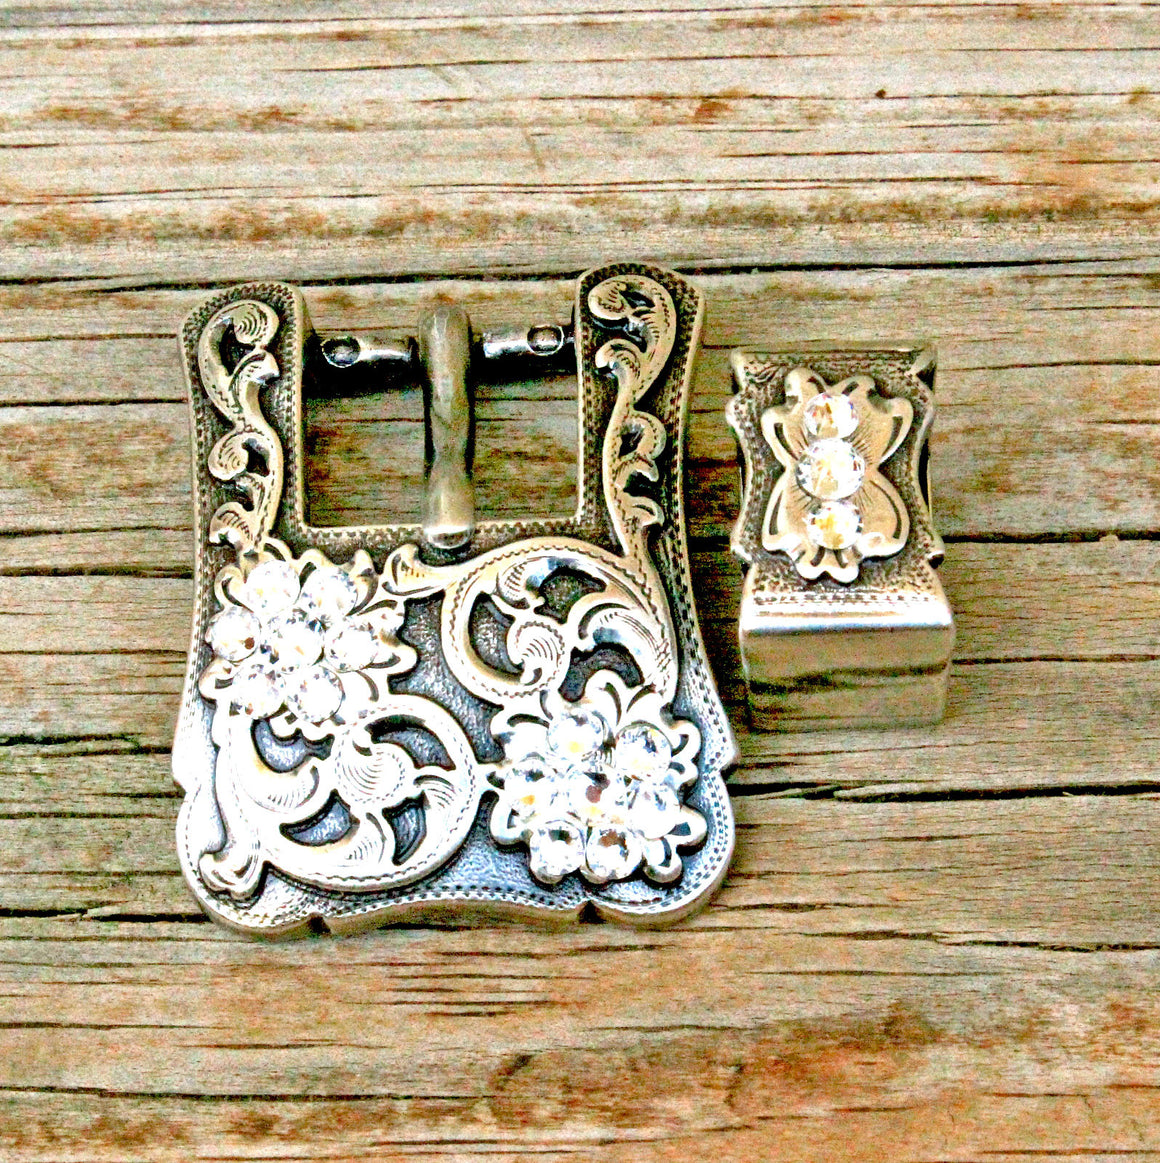 Antique Silver-Square Buckles